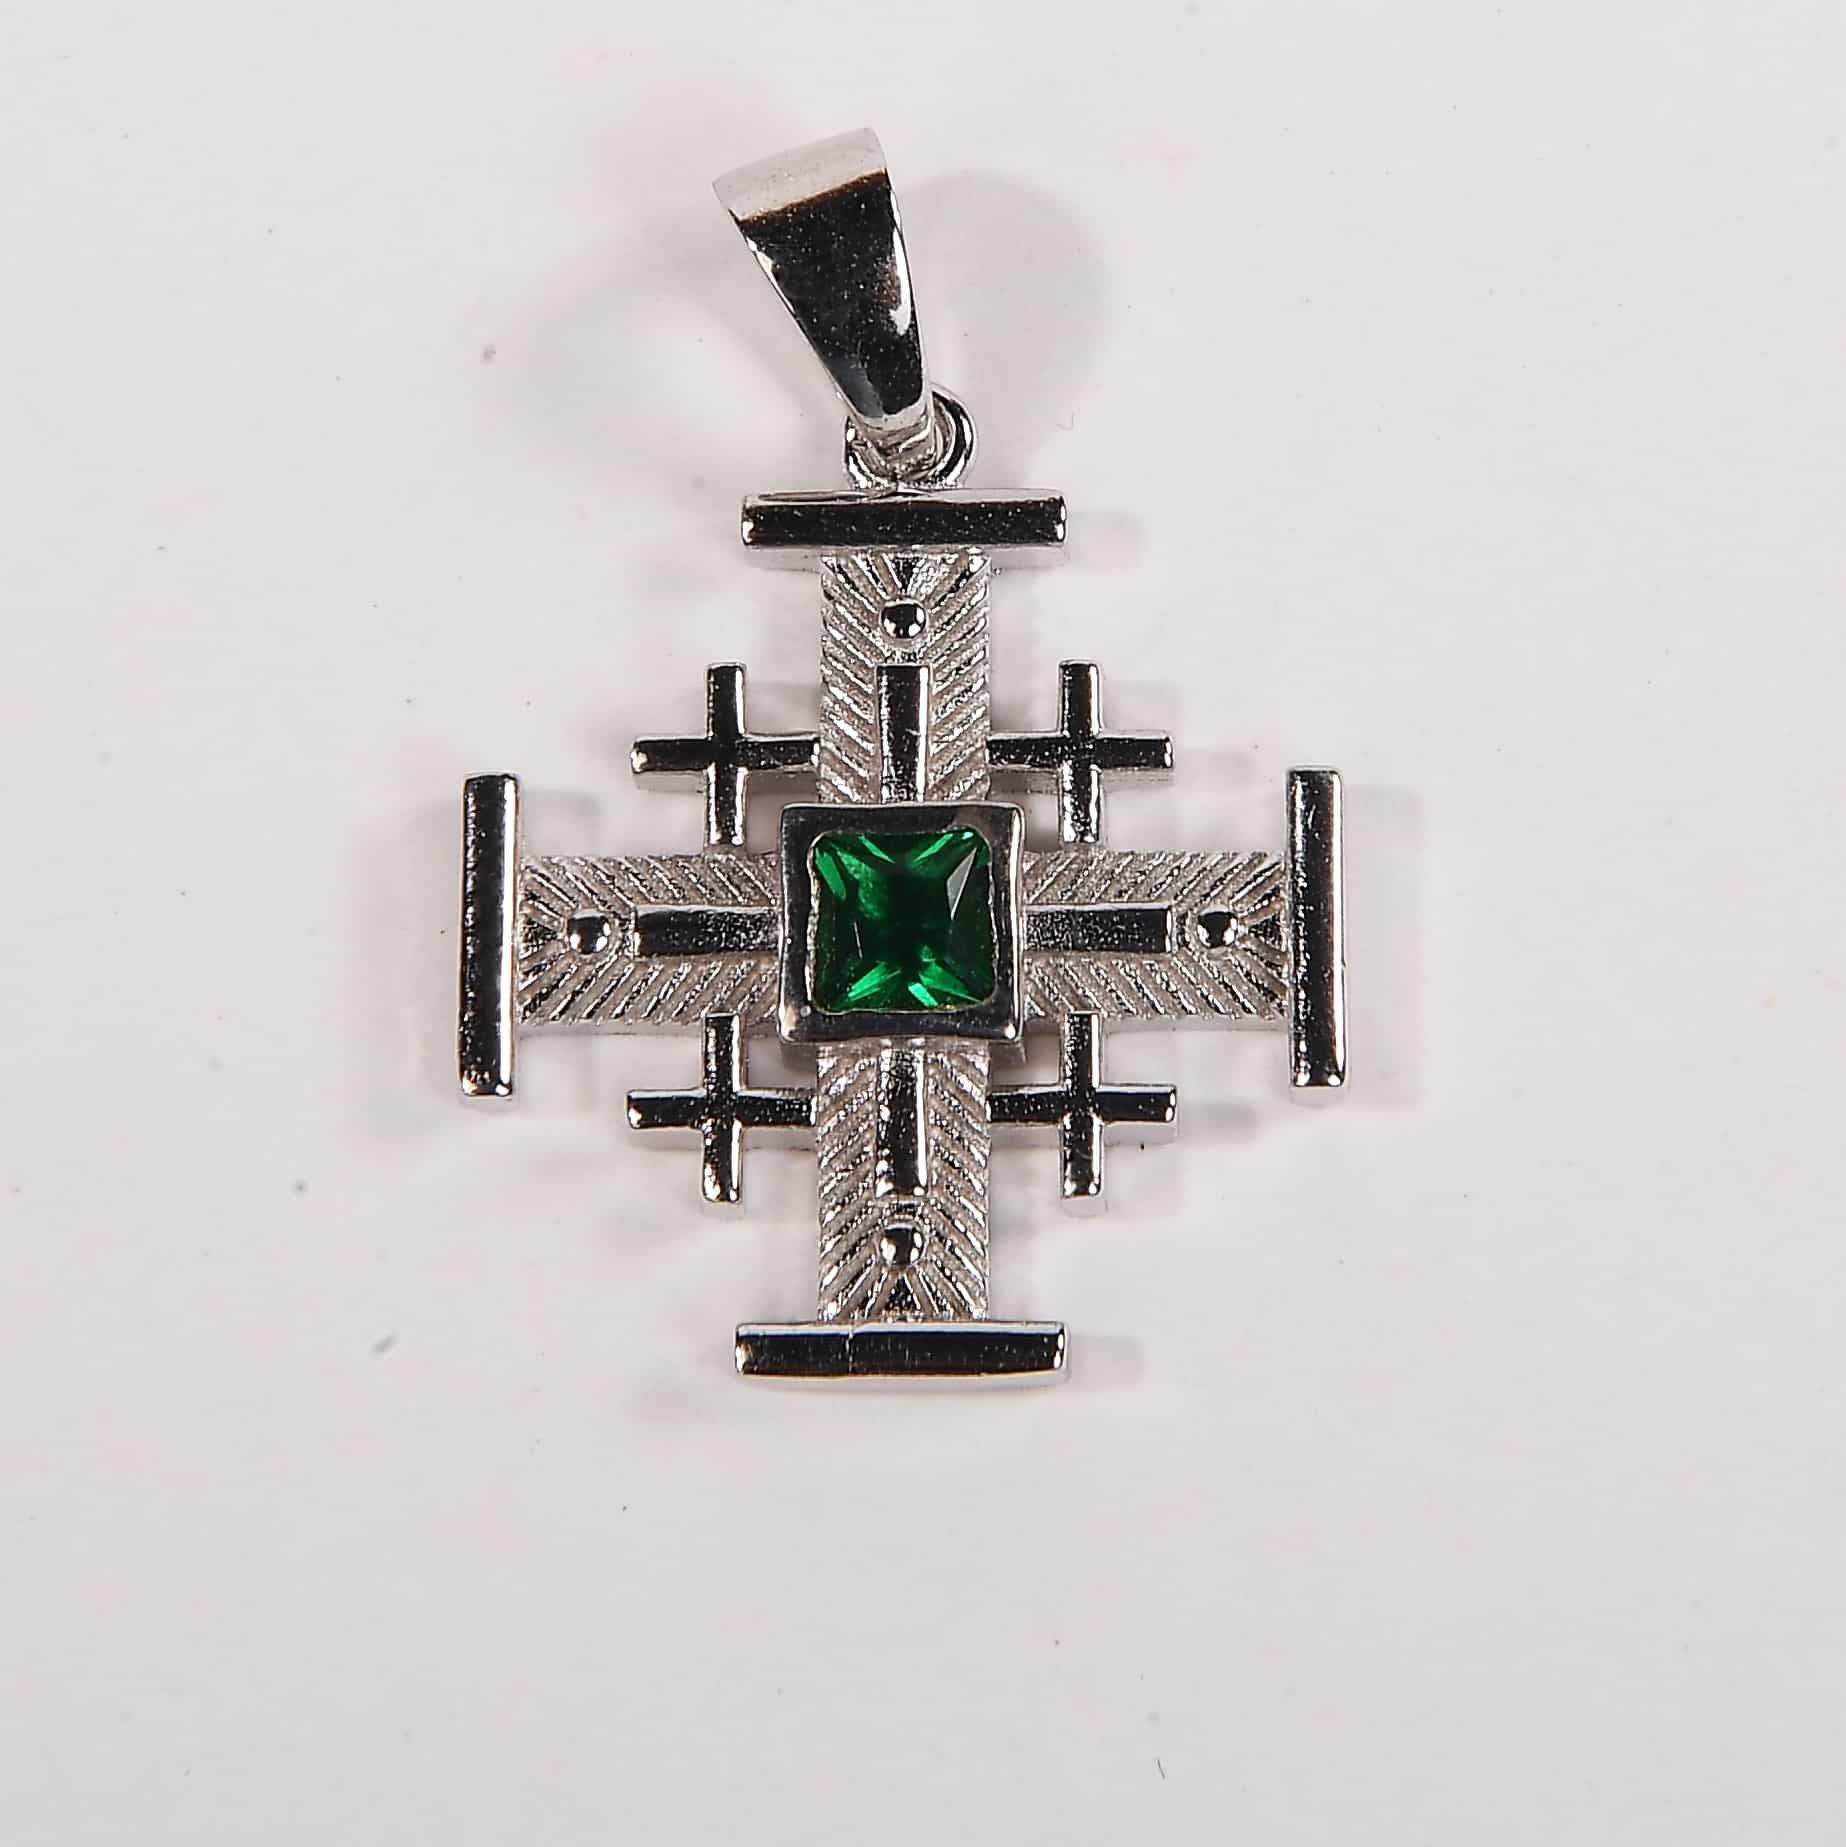 Jerusalem cross necklace with jade stone